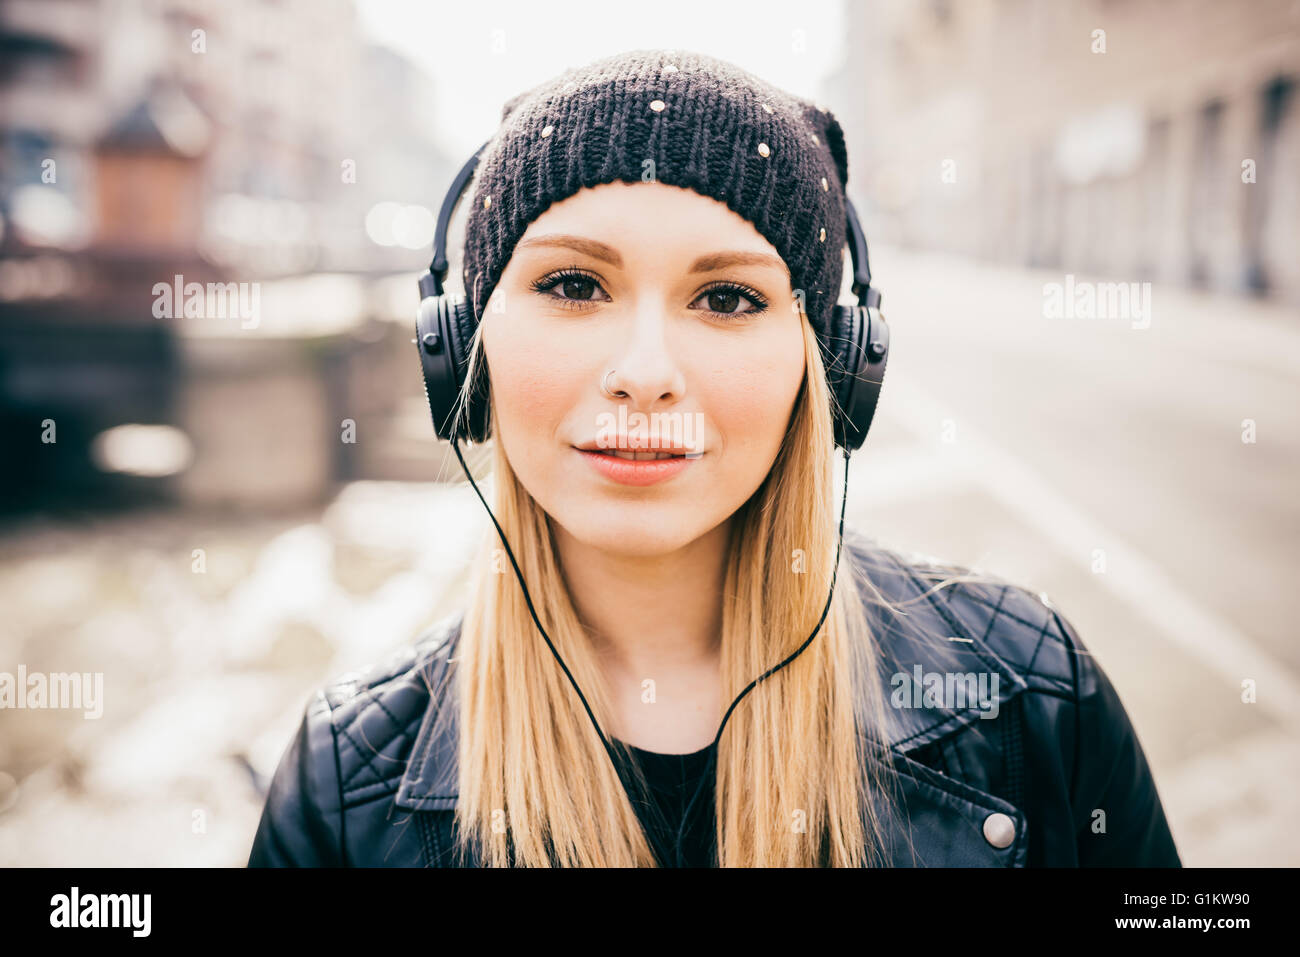 Half length of young beautiful blonde straight hair woman in the city with headphones listening to music, looking - Stock Image